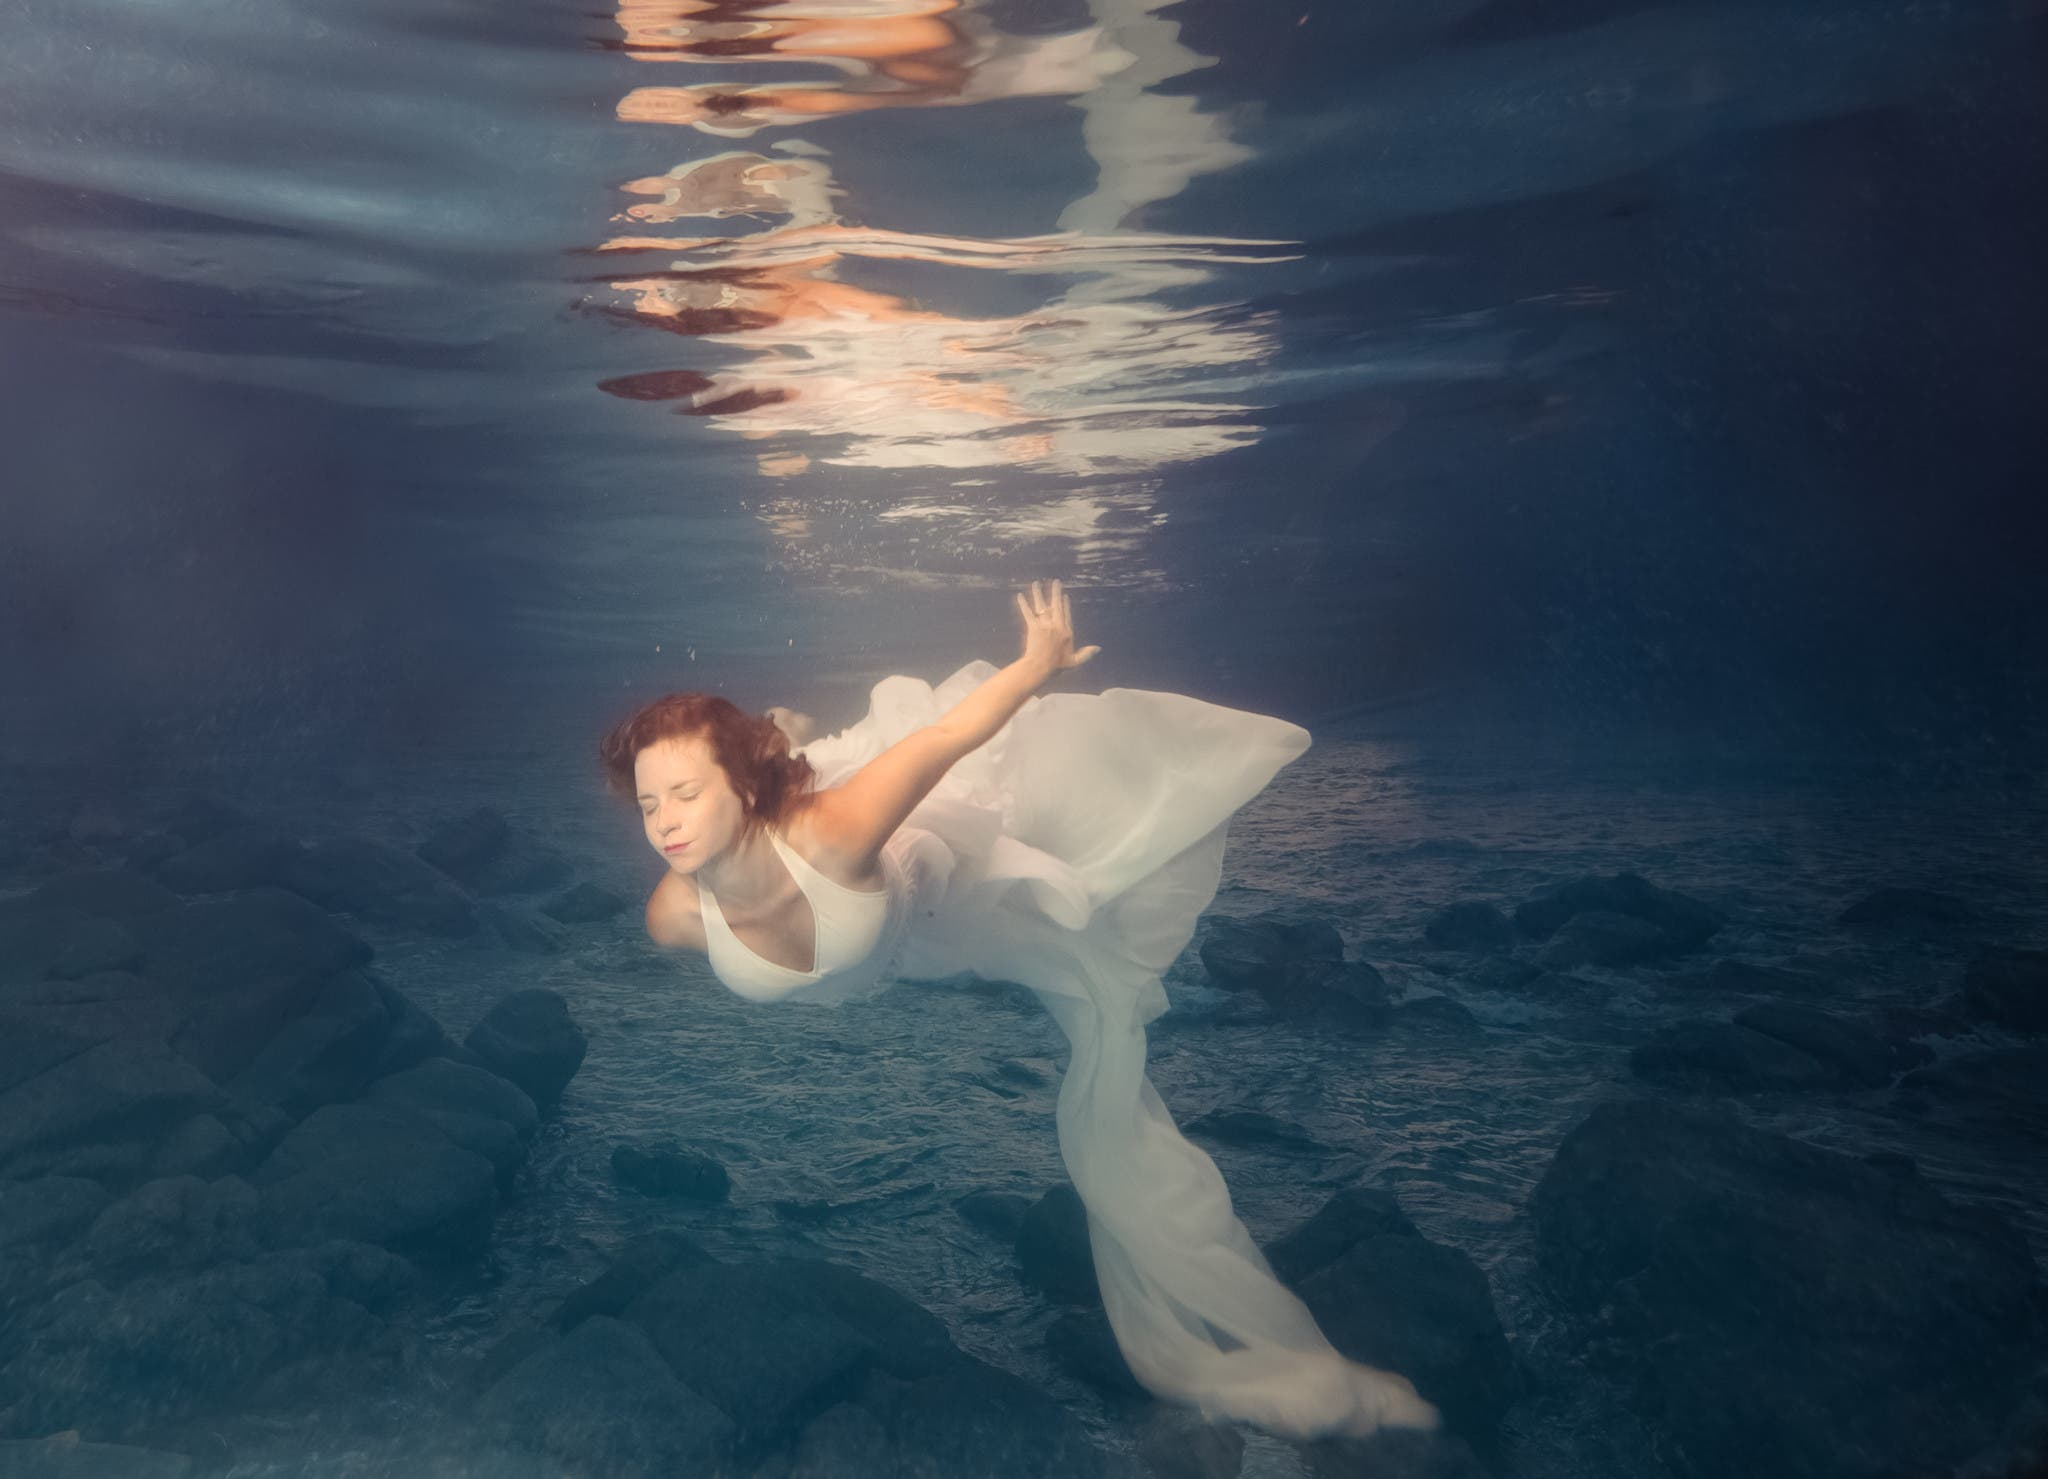 Tracie Maglosky: Planning an Underwater Maternity Photo Shoot